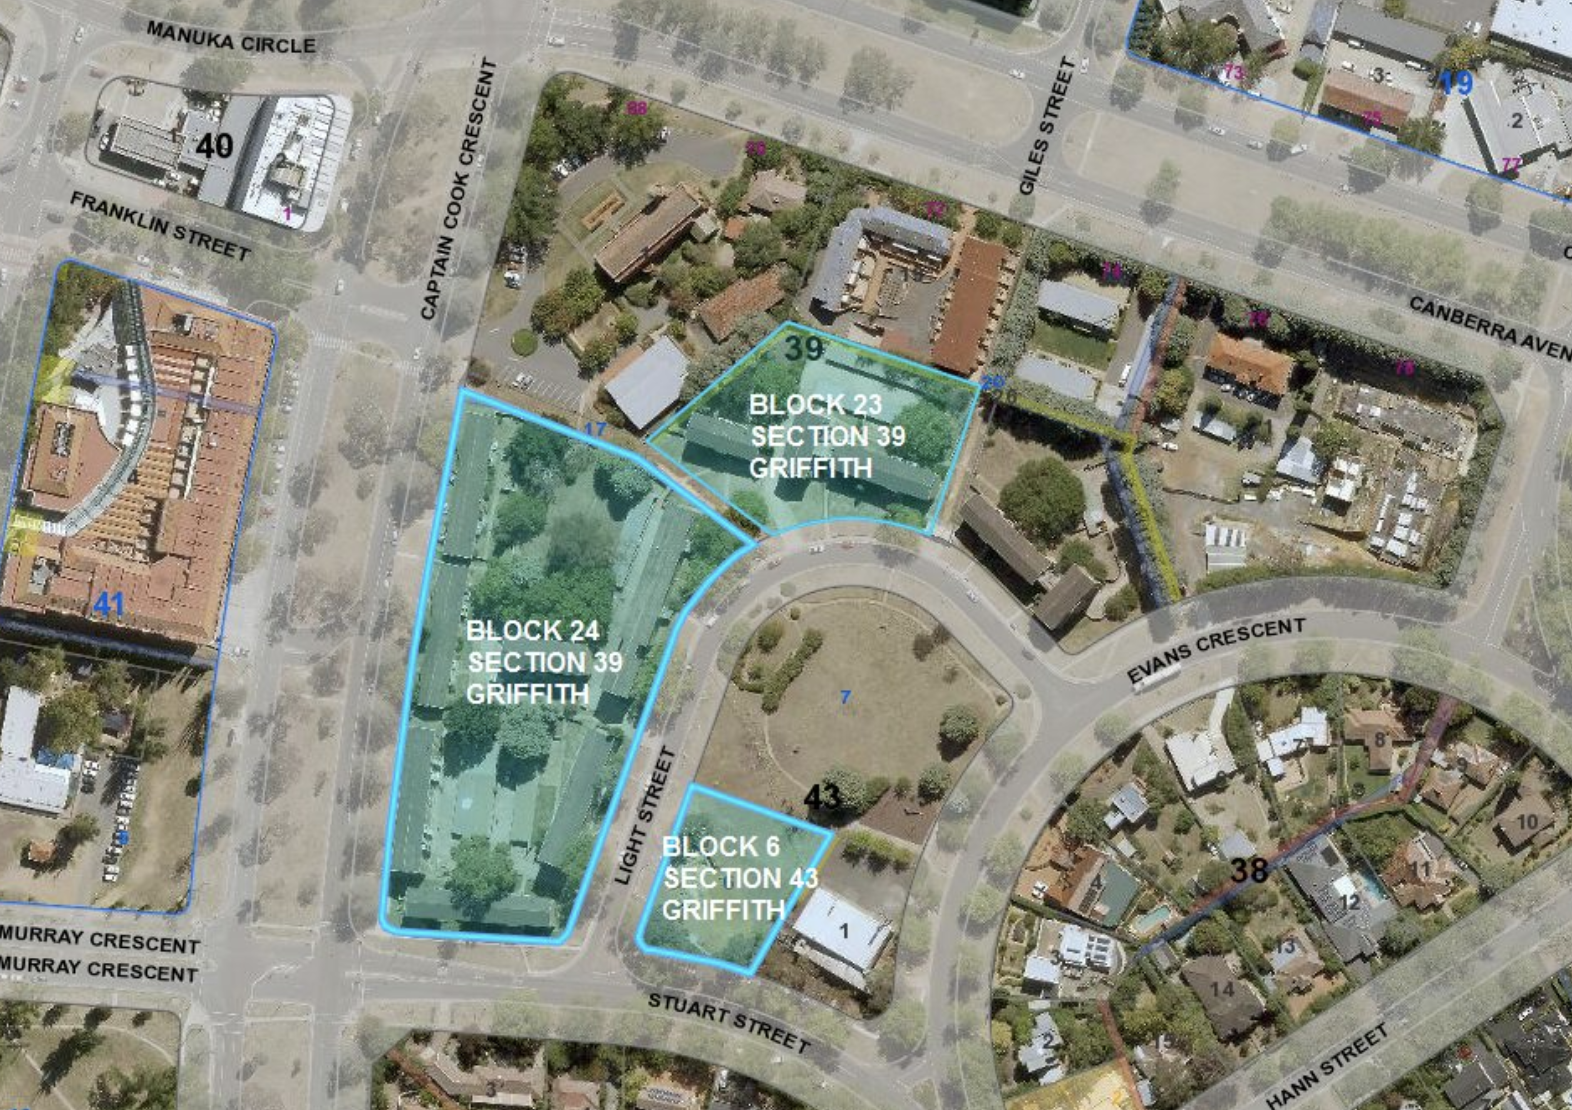 The redevelopment will take place over three parcels of land.